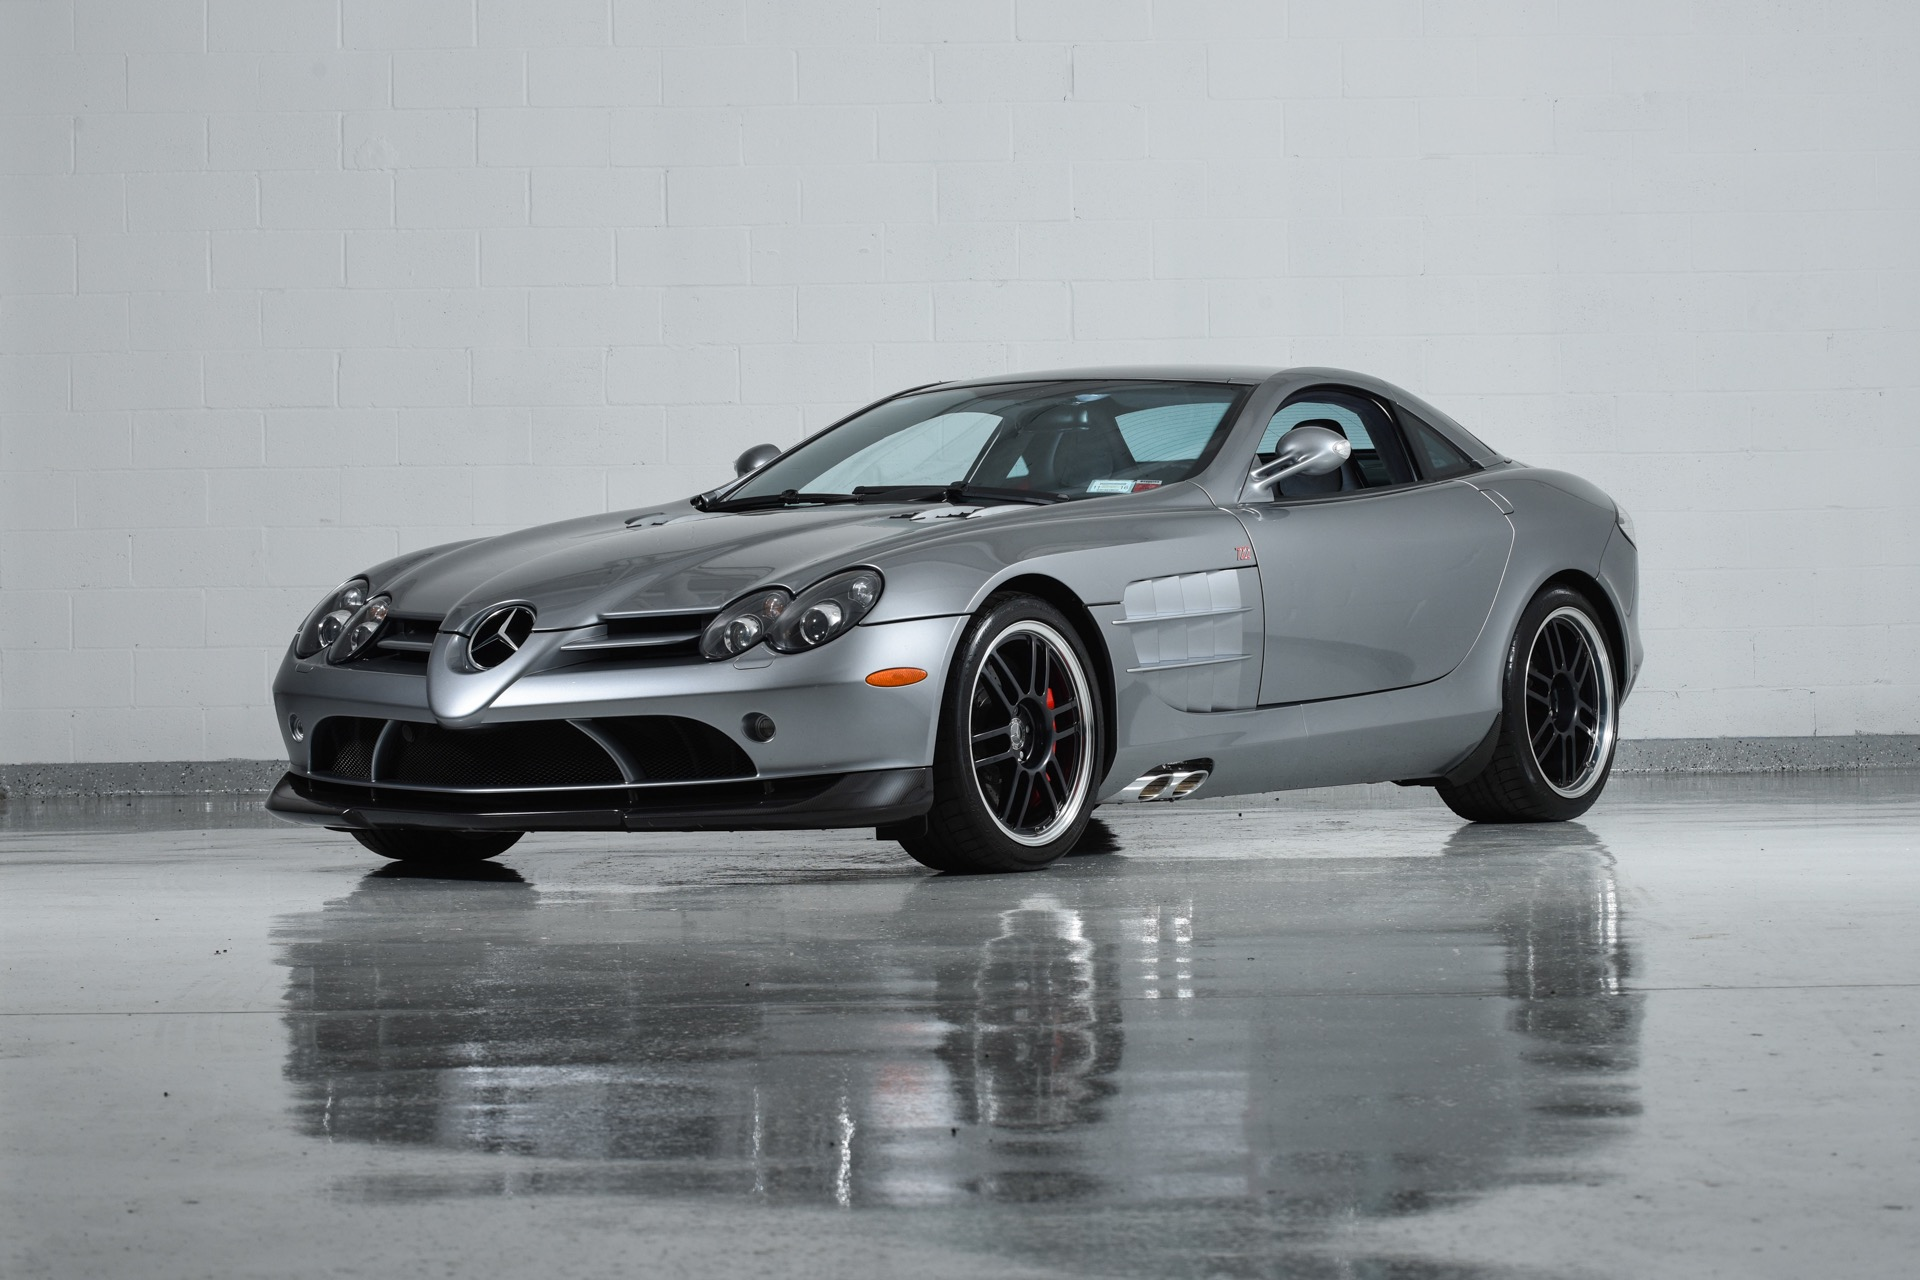 2007 mercedes benz slr mclaren 722 slr mclaren 722 edition. Black Bedroom Furniture Sets. Home Design Ideas